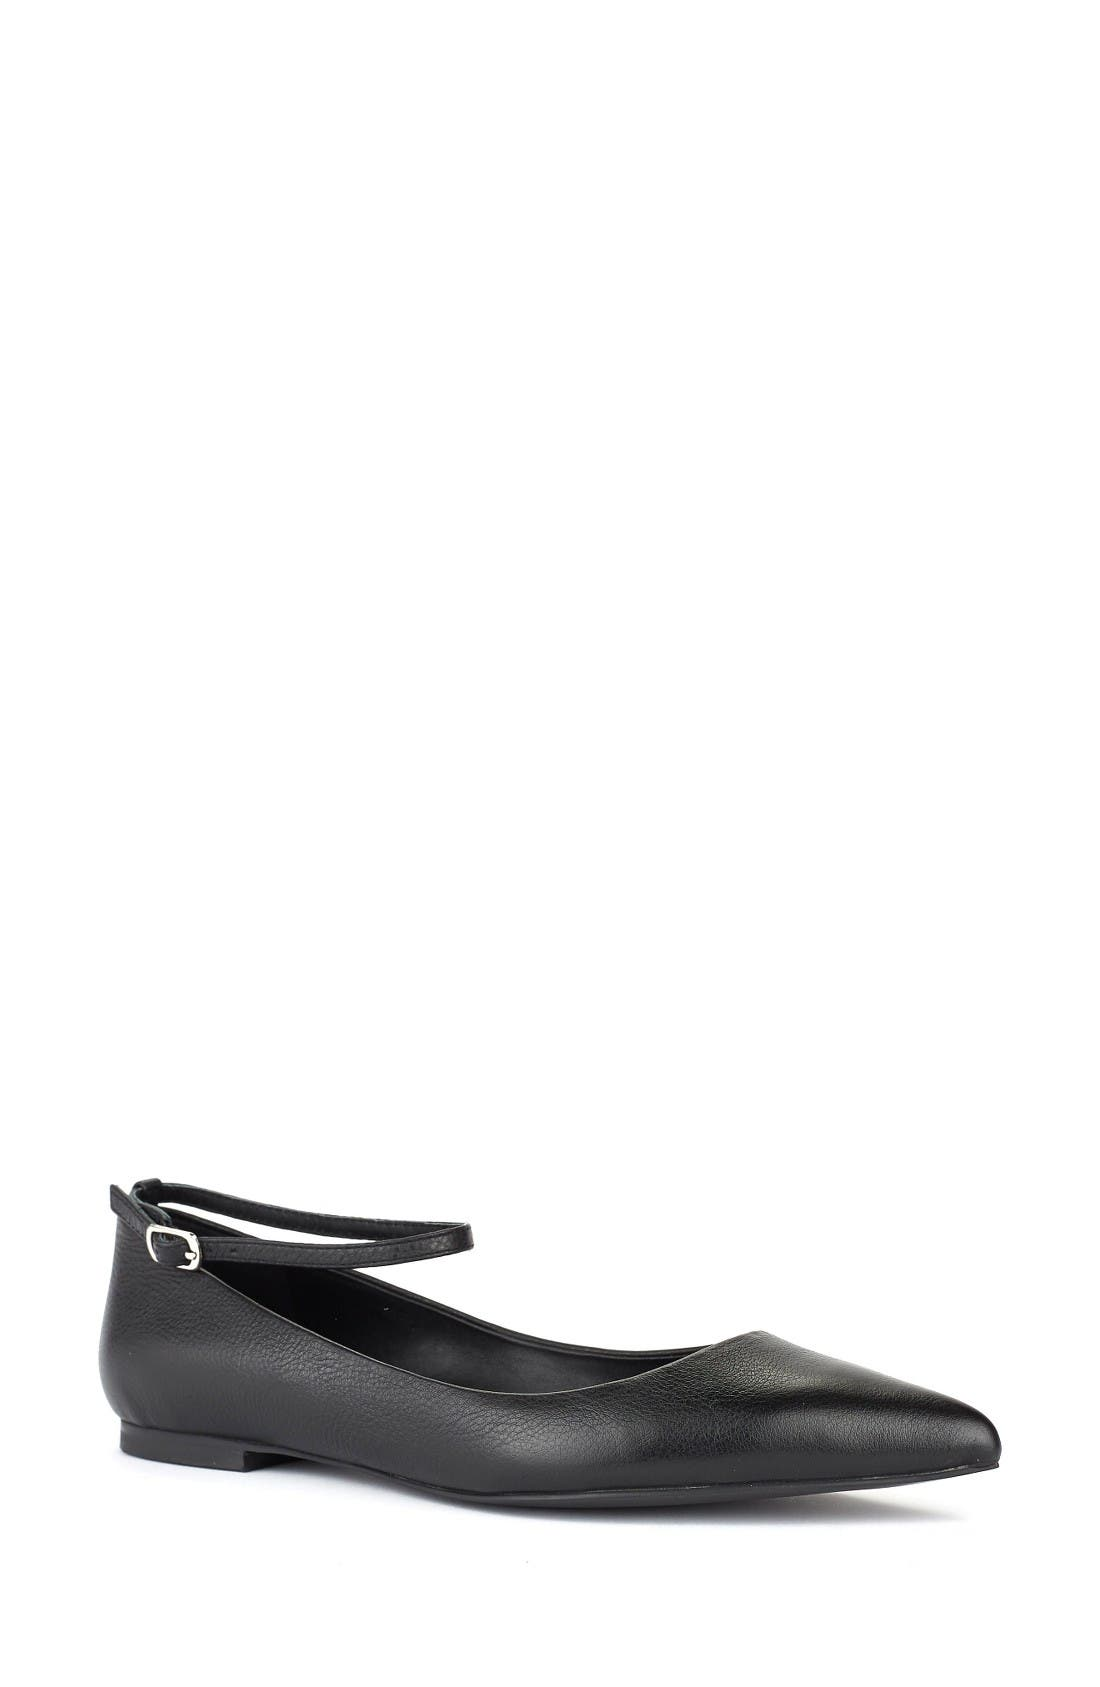 Main Image - Shoes of Prey Ankle Strap Flat (Women)